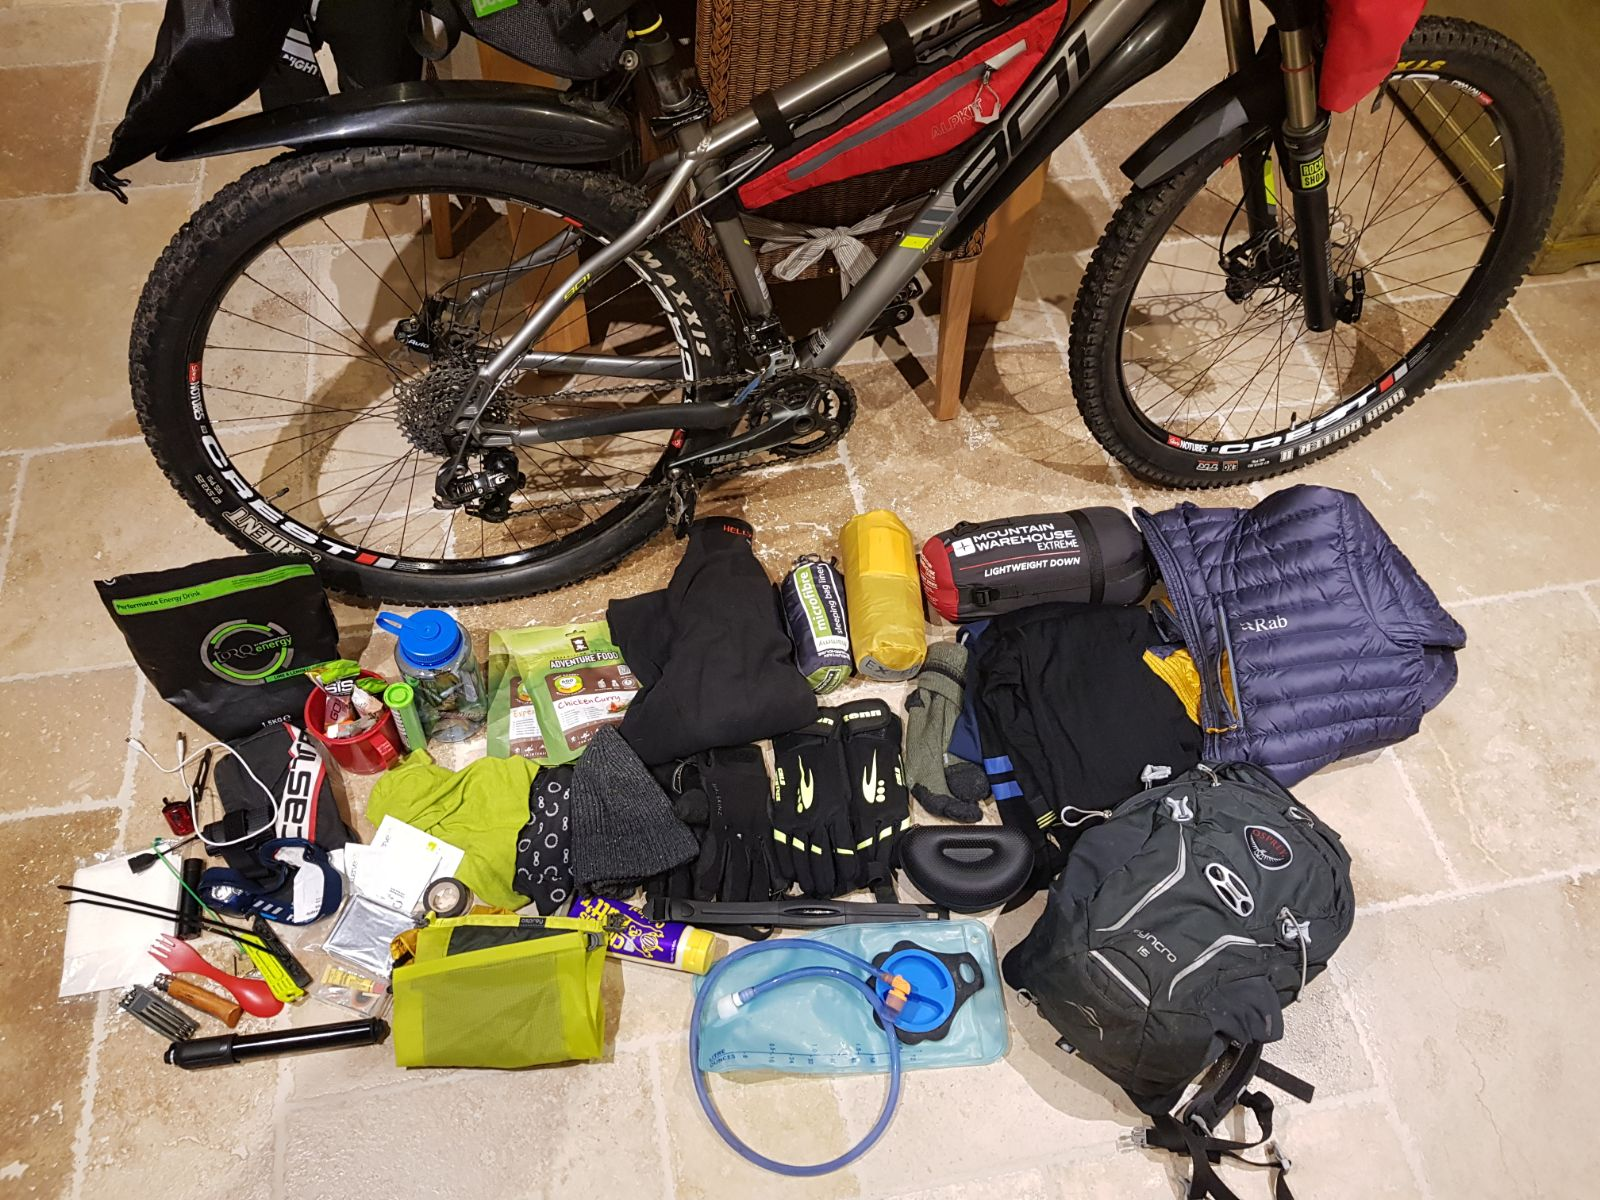 bearbones bikepacking kit